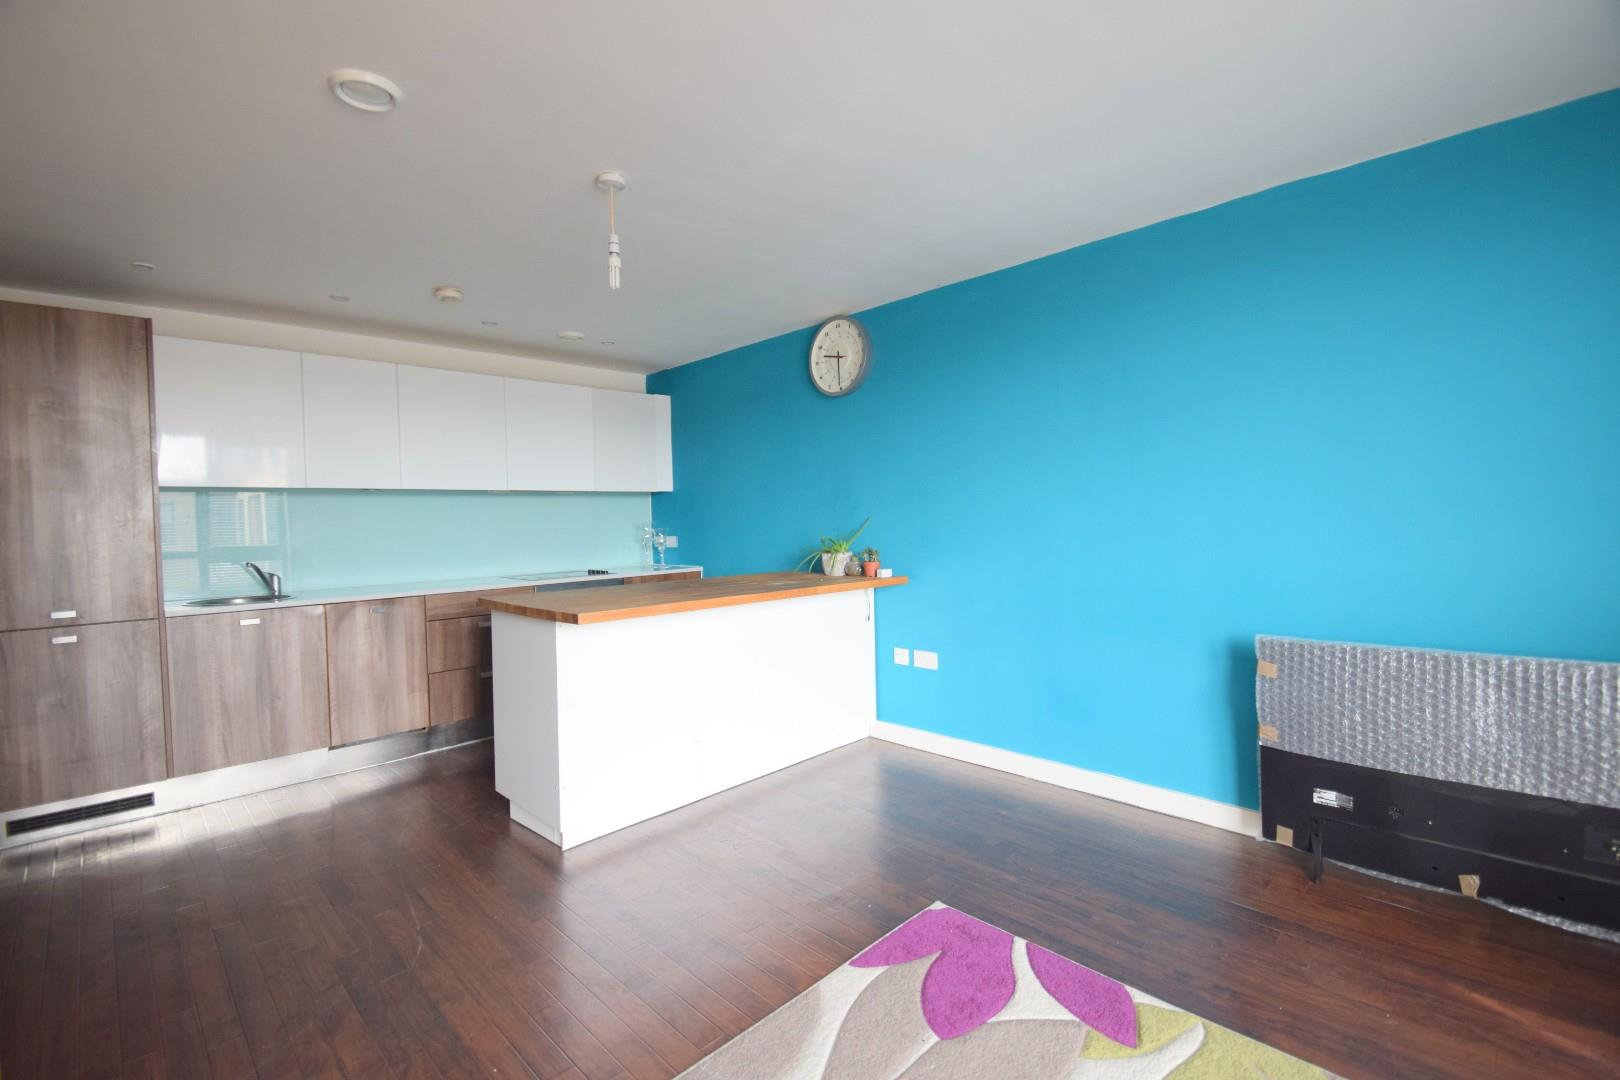 2 bed flat to rent in Southernhay, Basildon, SS14